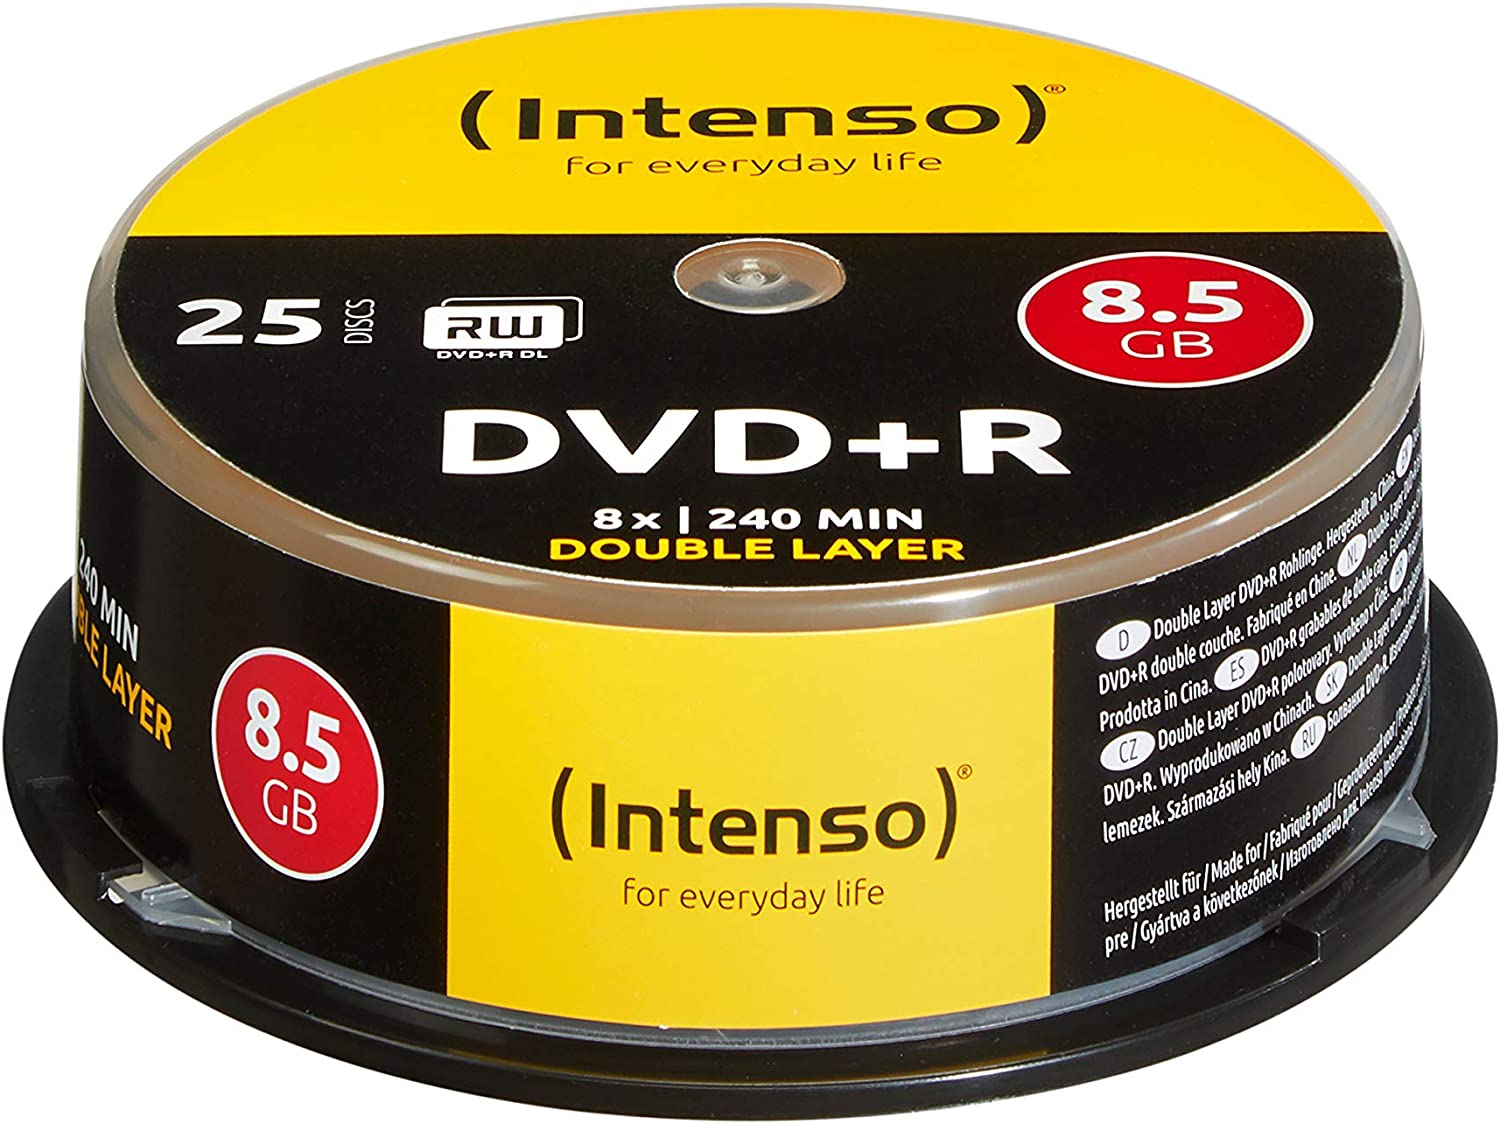 Intenso Dvd R Double Layer Rohlinge 8 5gb 8x Speed Computer Zubehör